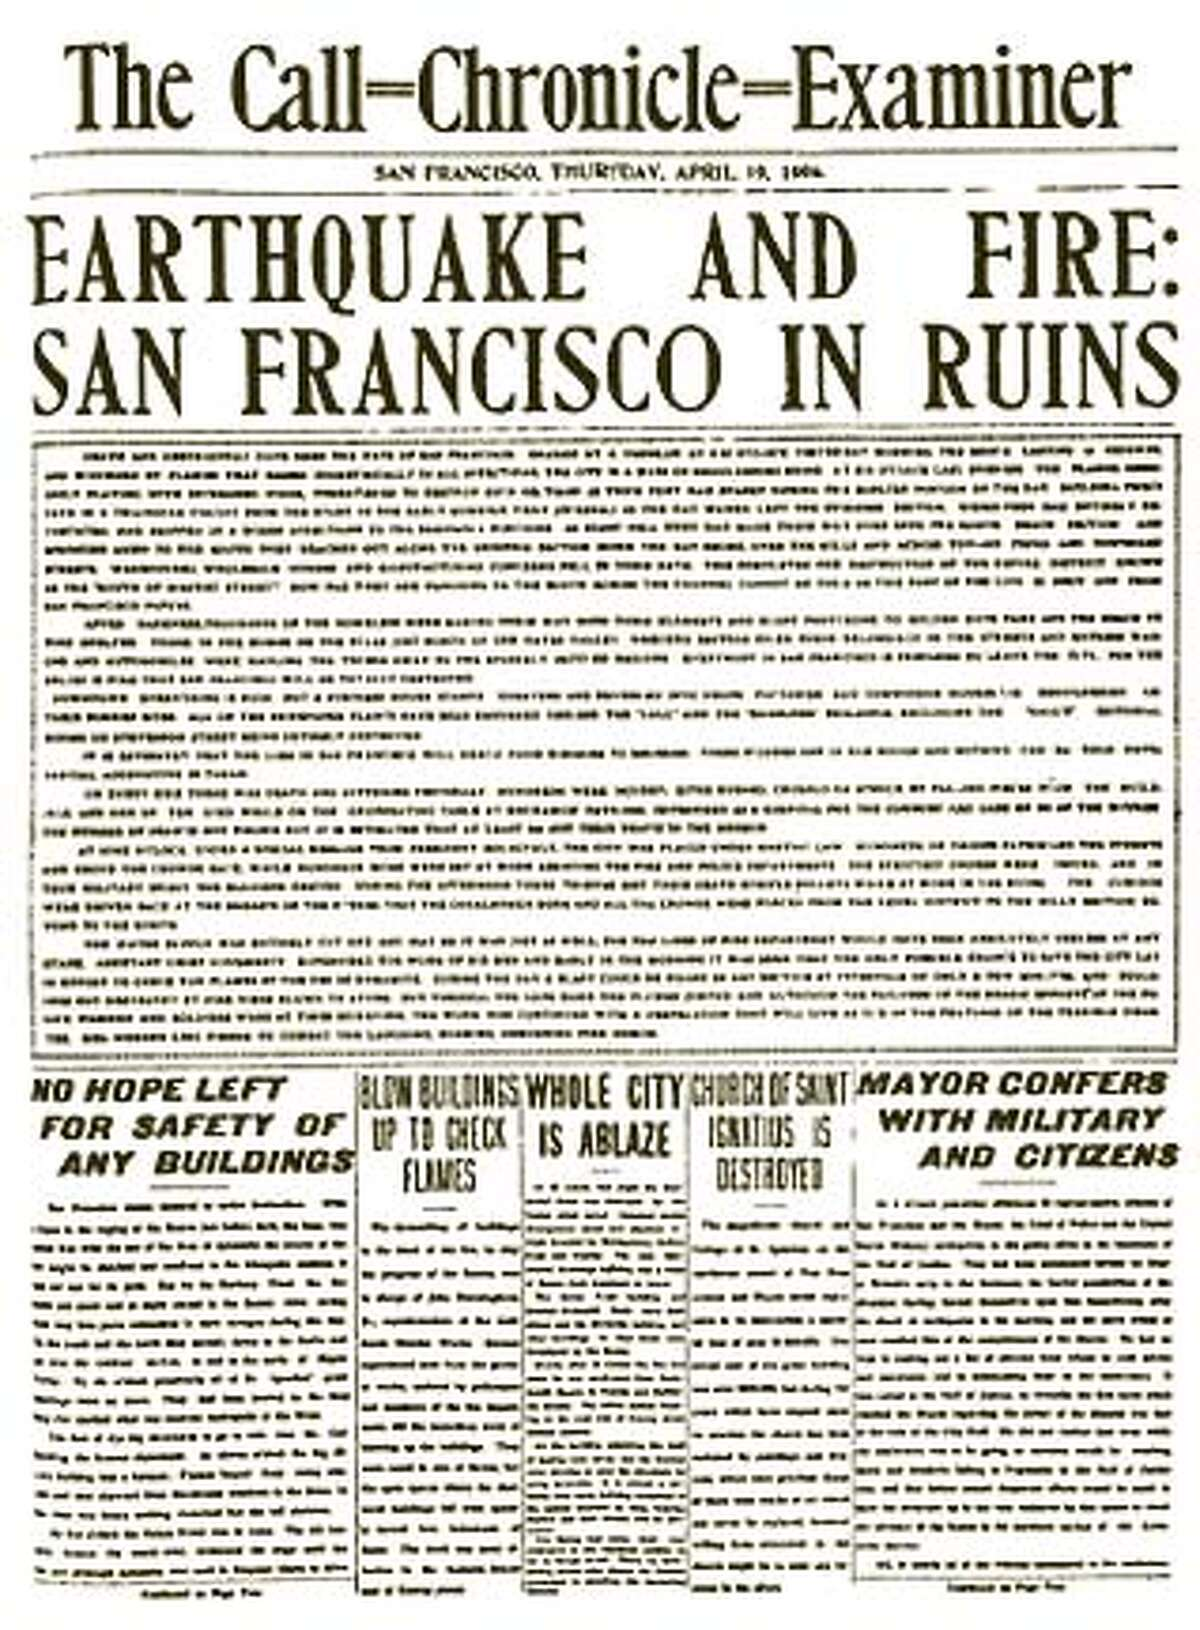 The 1906 earthquake and fire in San Francisco made headlines around the world. Chronicle File Photo